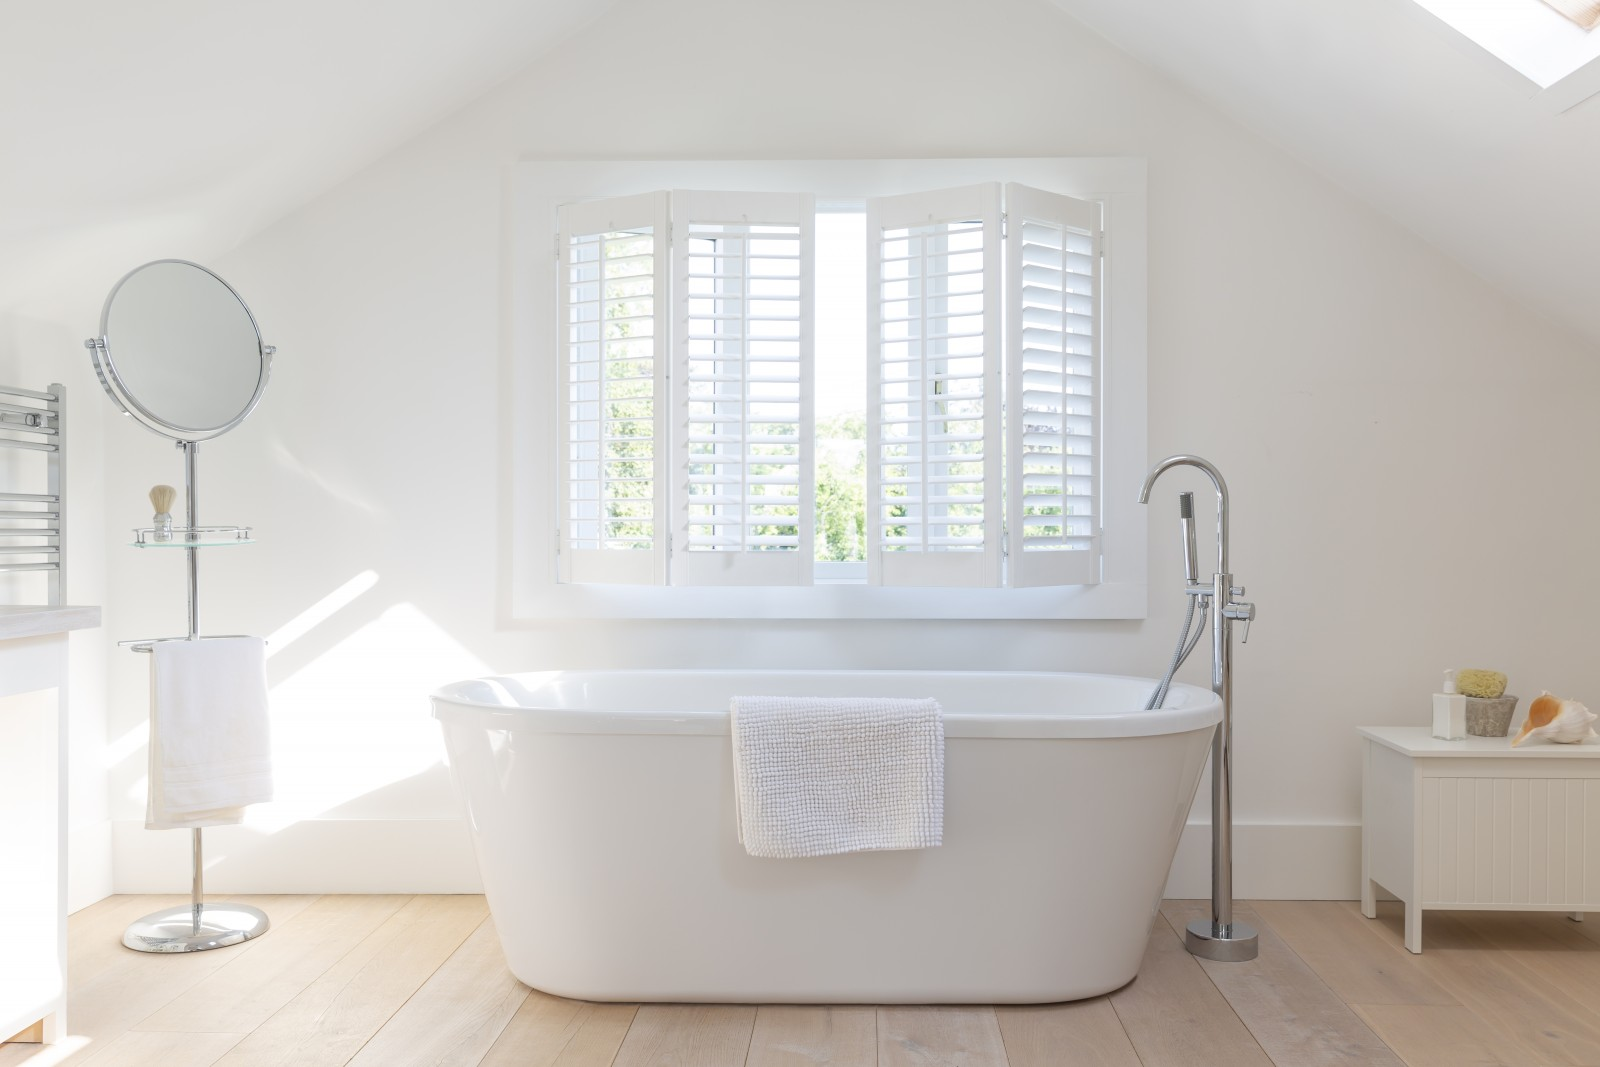 Tracked Shutters in Bathroom - Shuttersouth - Hampshire